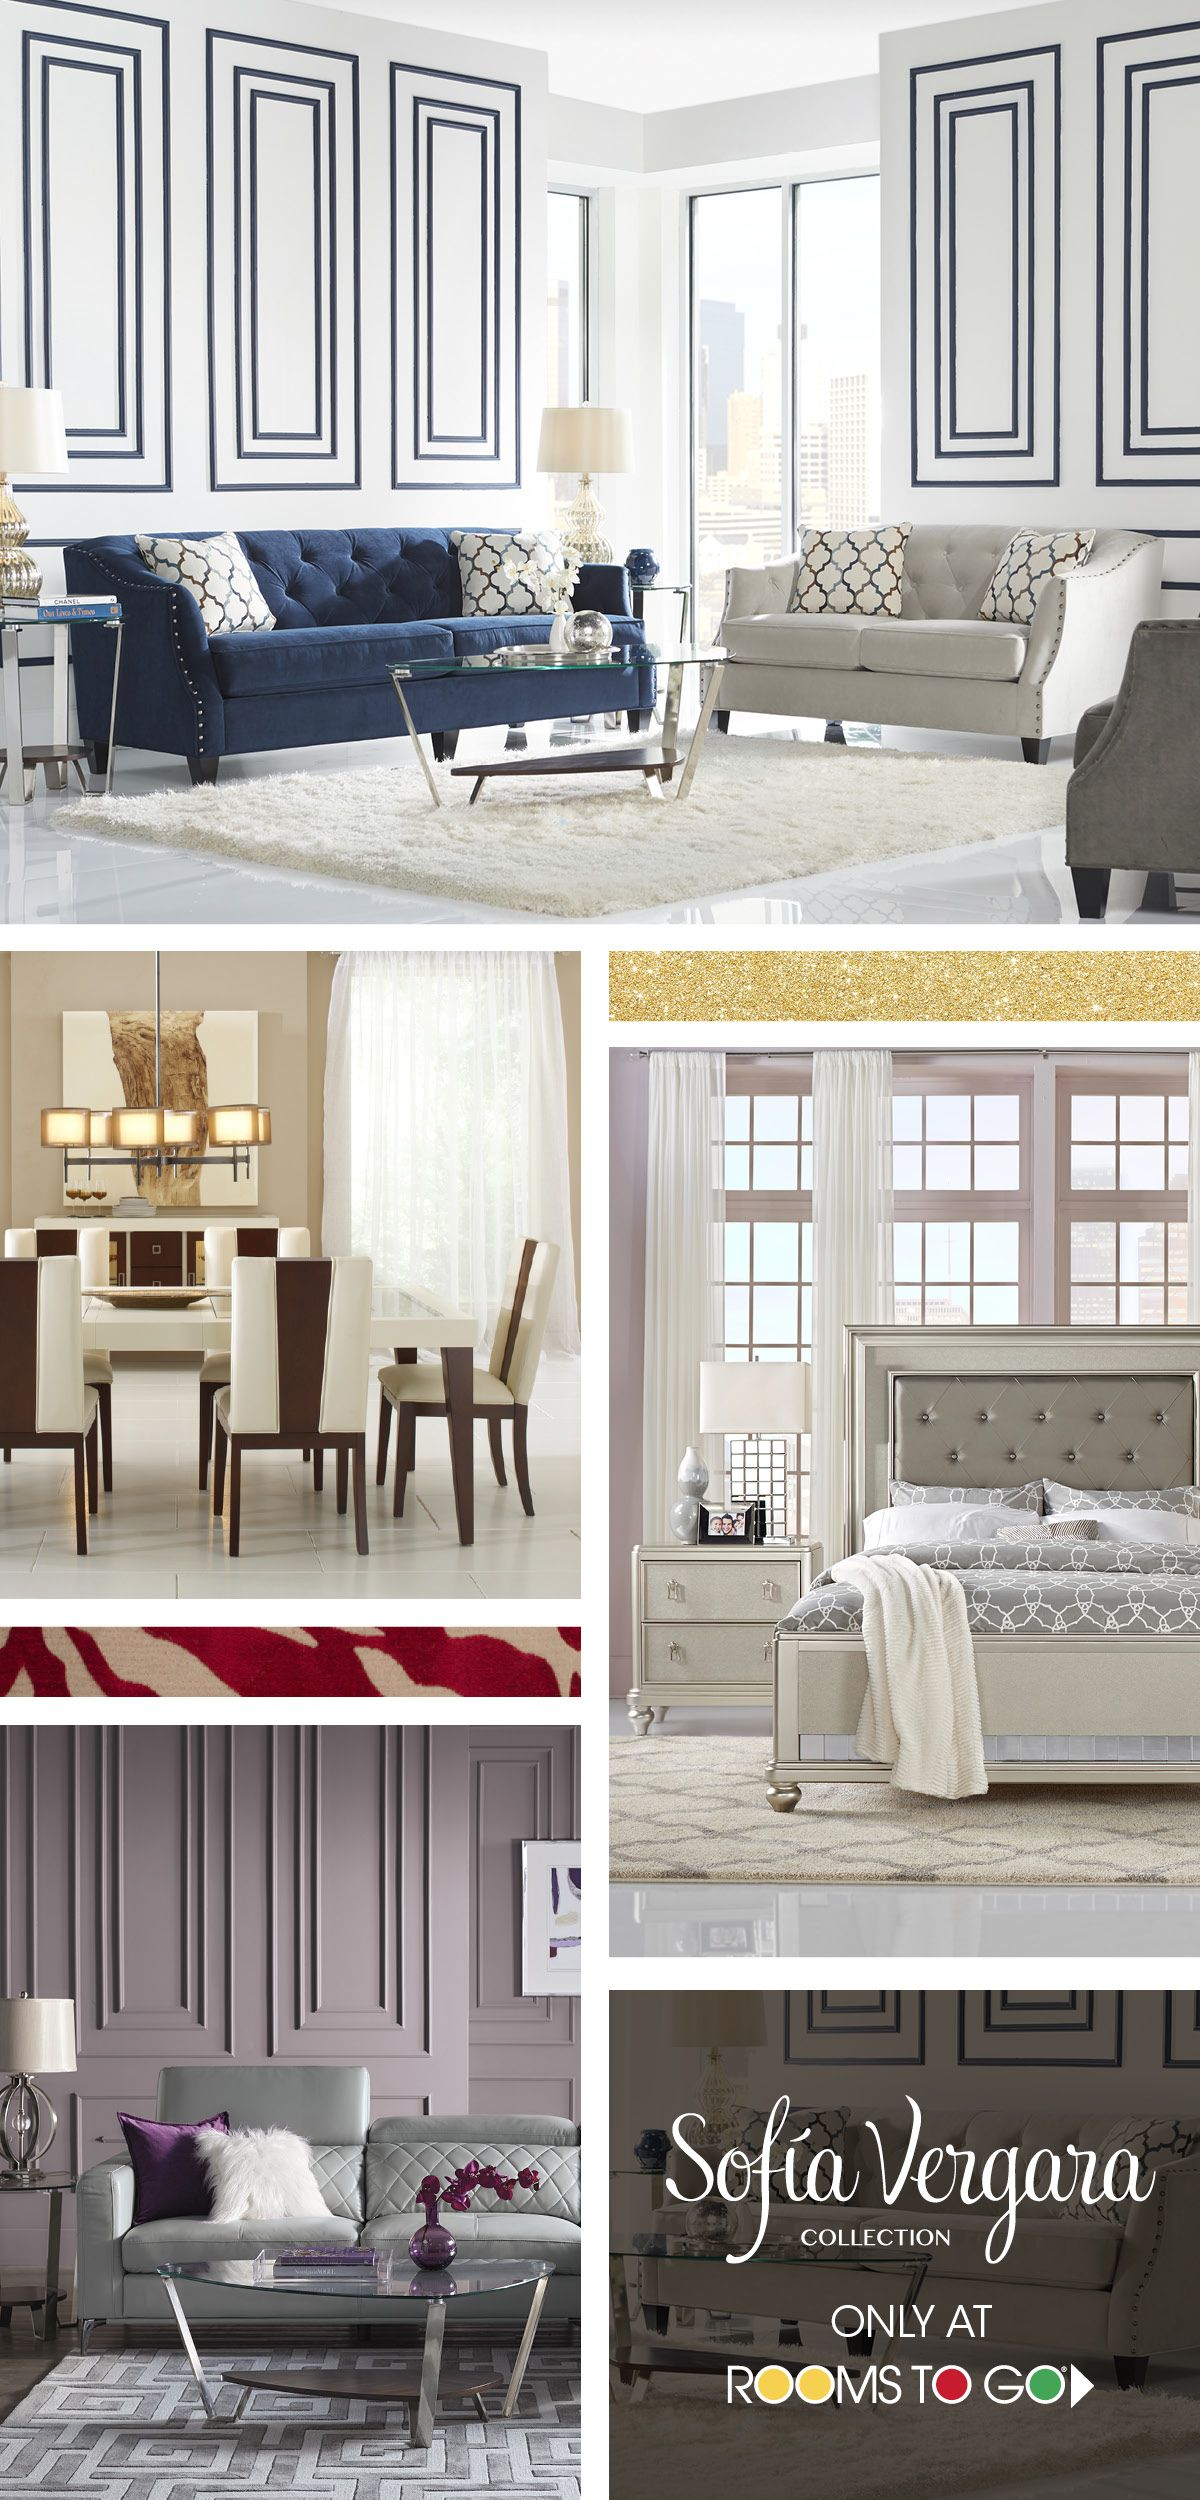 Glamorous home designs that capture the stunning contemporary style